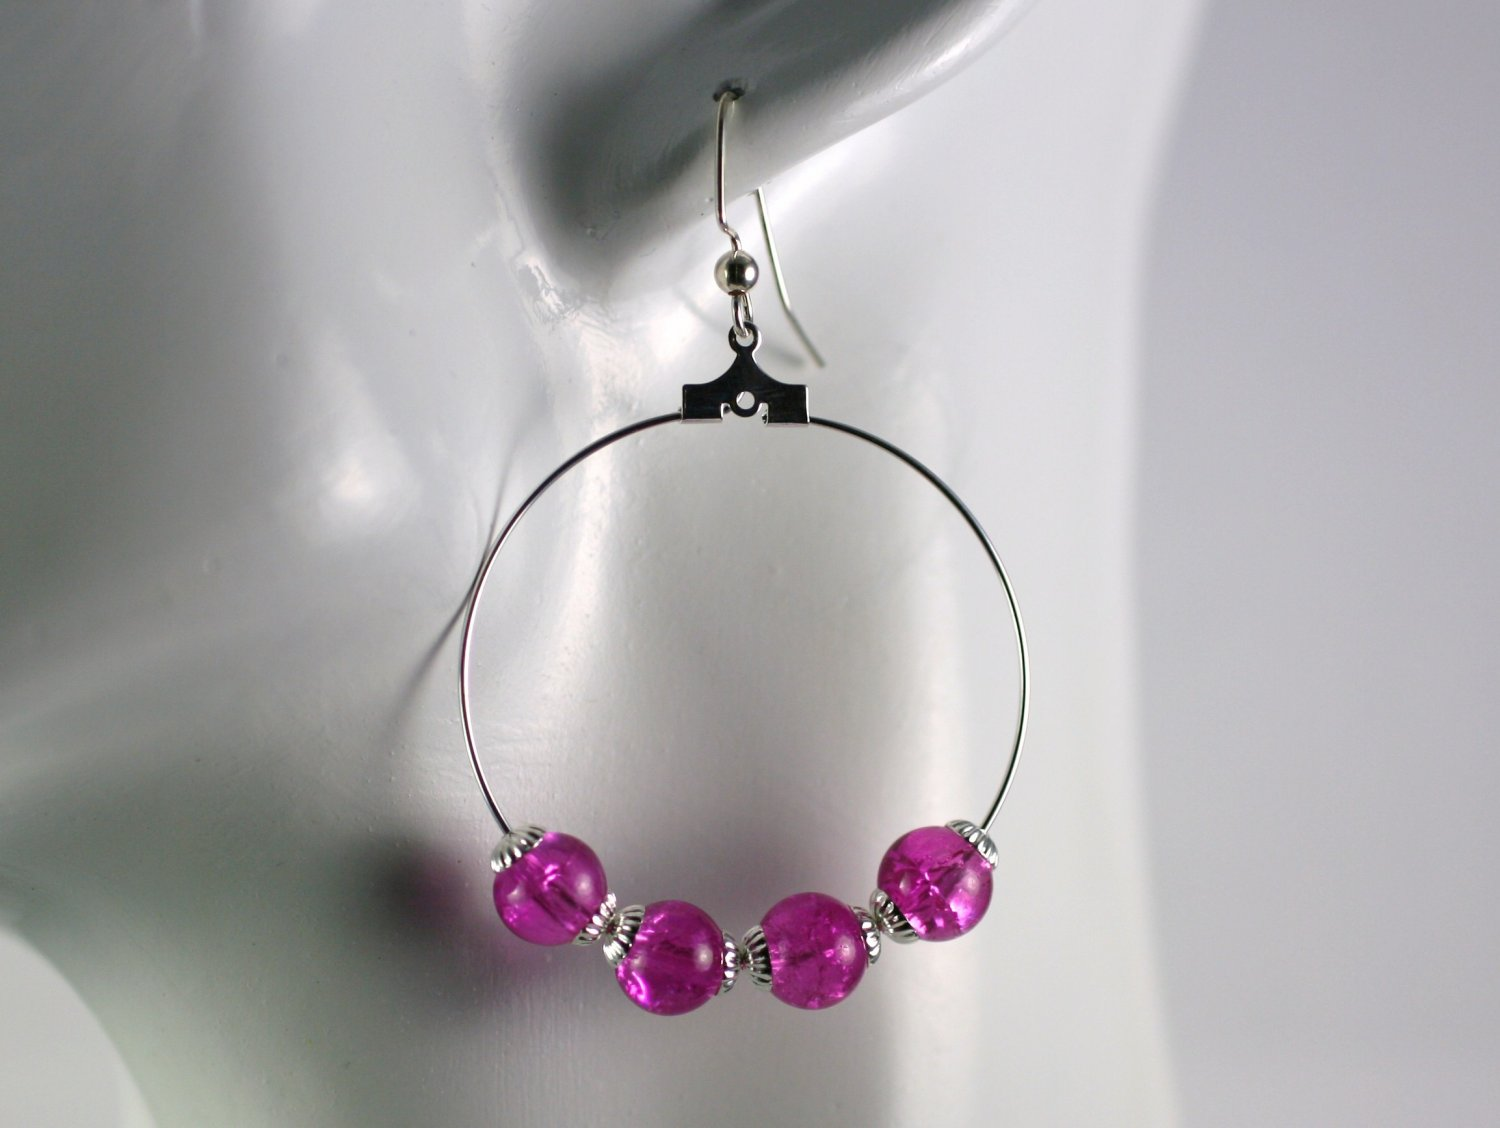 Silver Hoop Earrings with Pink Crackled Glass Beads 1.5 in.  Handcrafted Jewelry